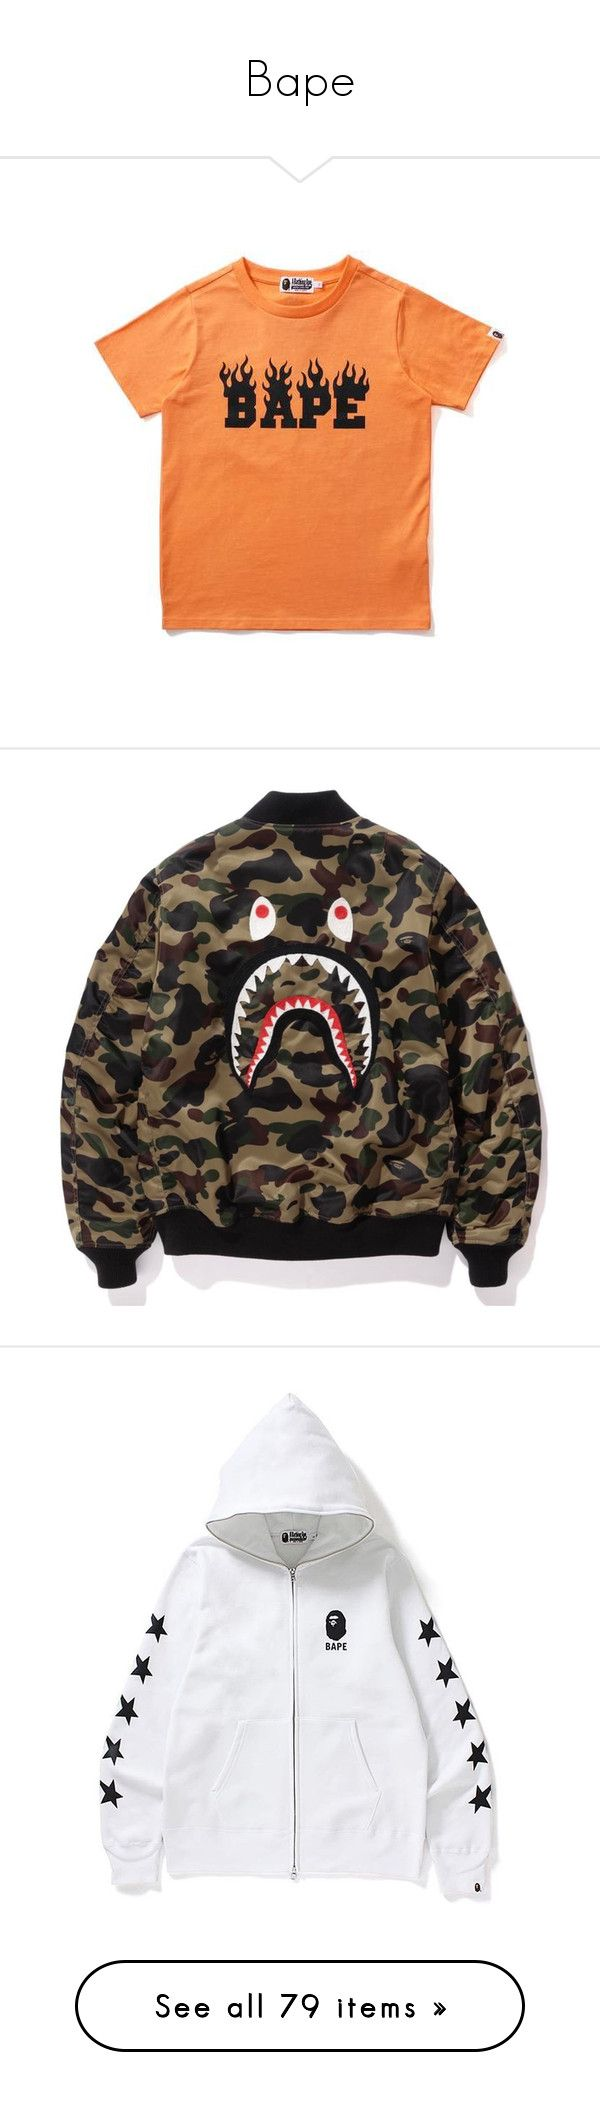 """""""Bape"""" by jadahnicole ❤ liked on Polyvore featuring tops, t-shirts, a bathing ape, red t shirt, a bathing ape t shirts, fluorescent t shirts, red top, hoodies, neon tops and neon tees"""